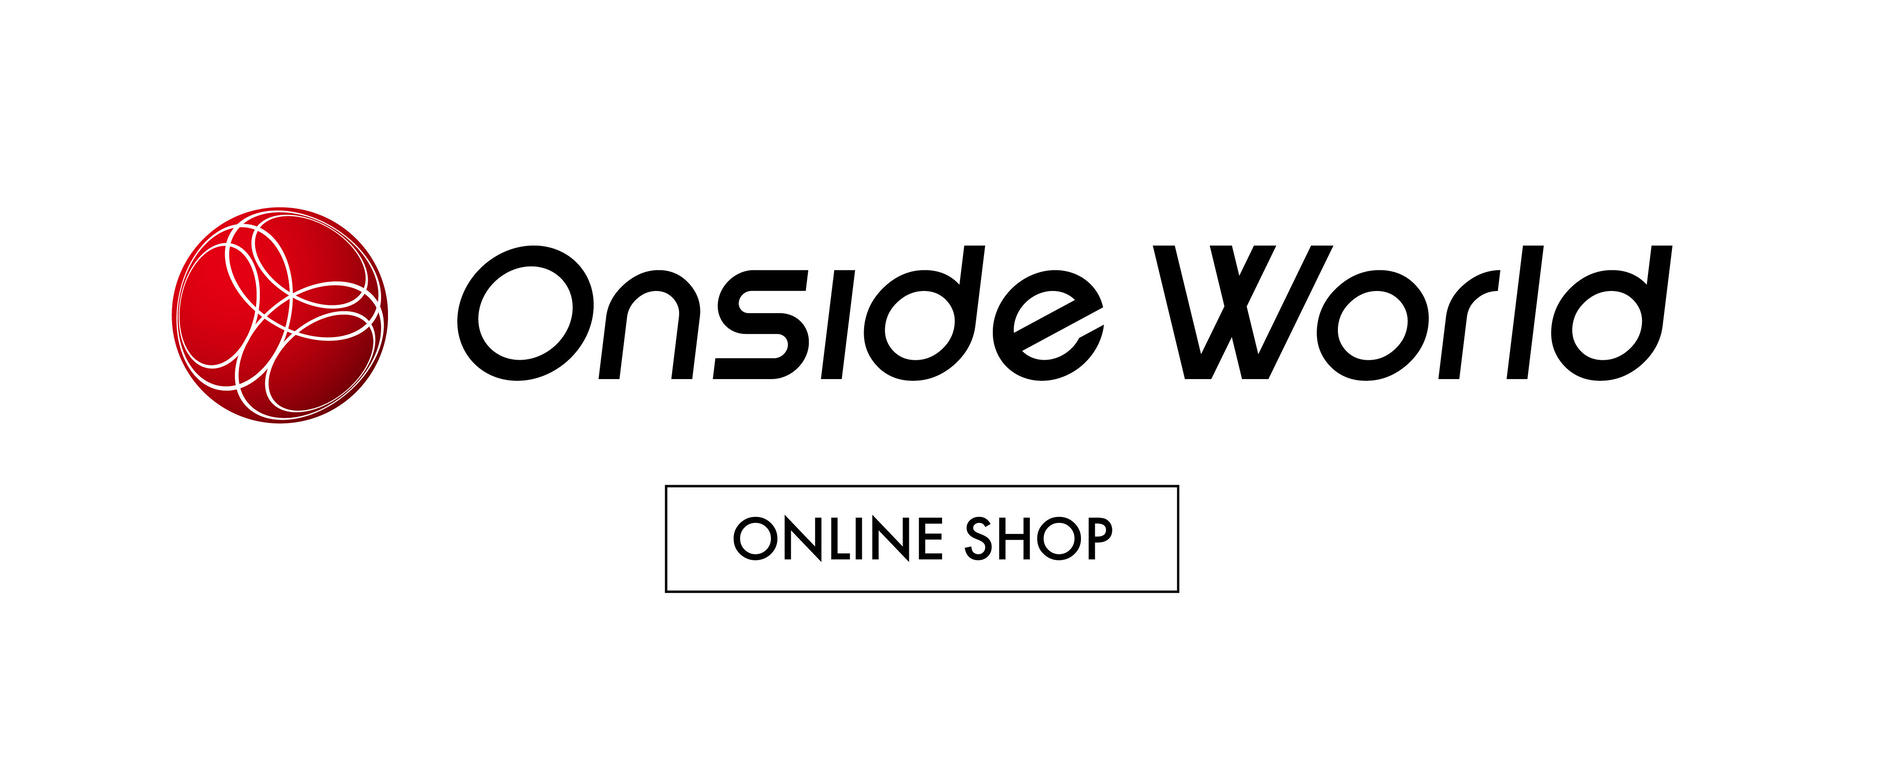 Onside World online shop